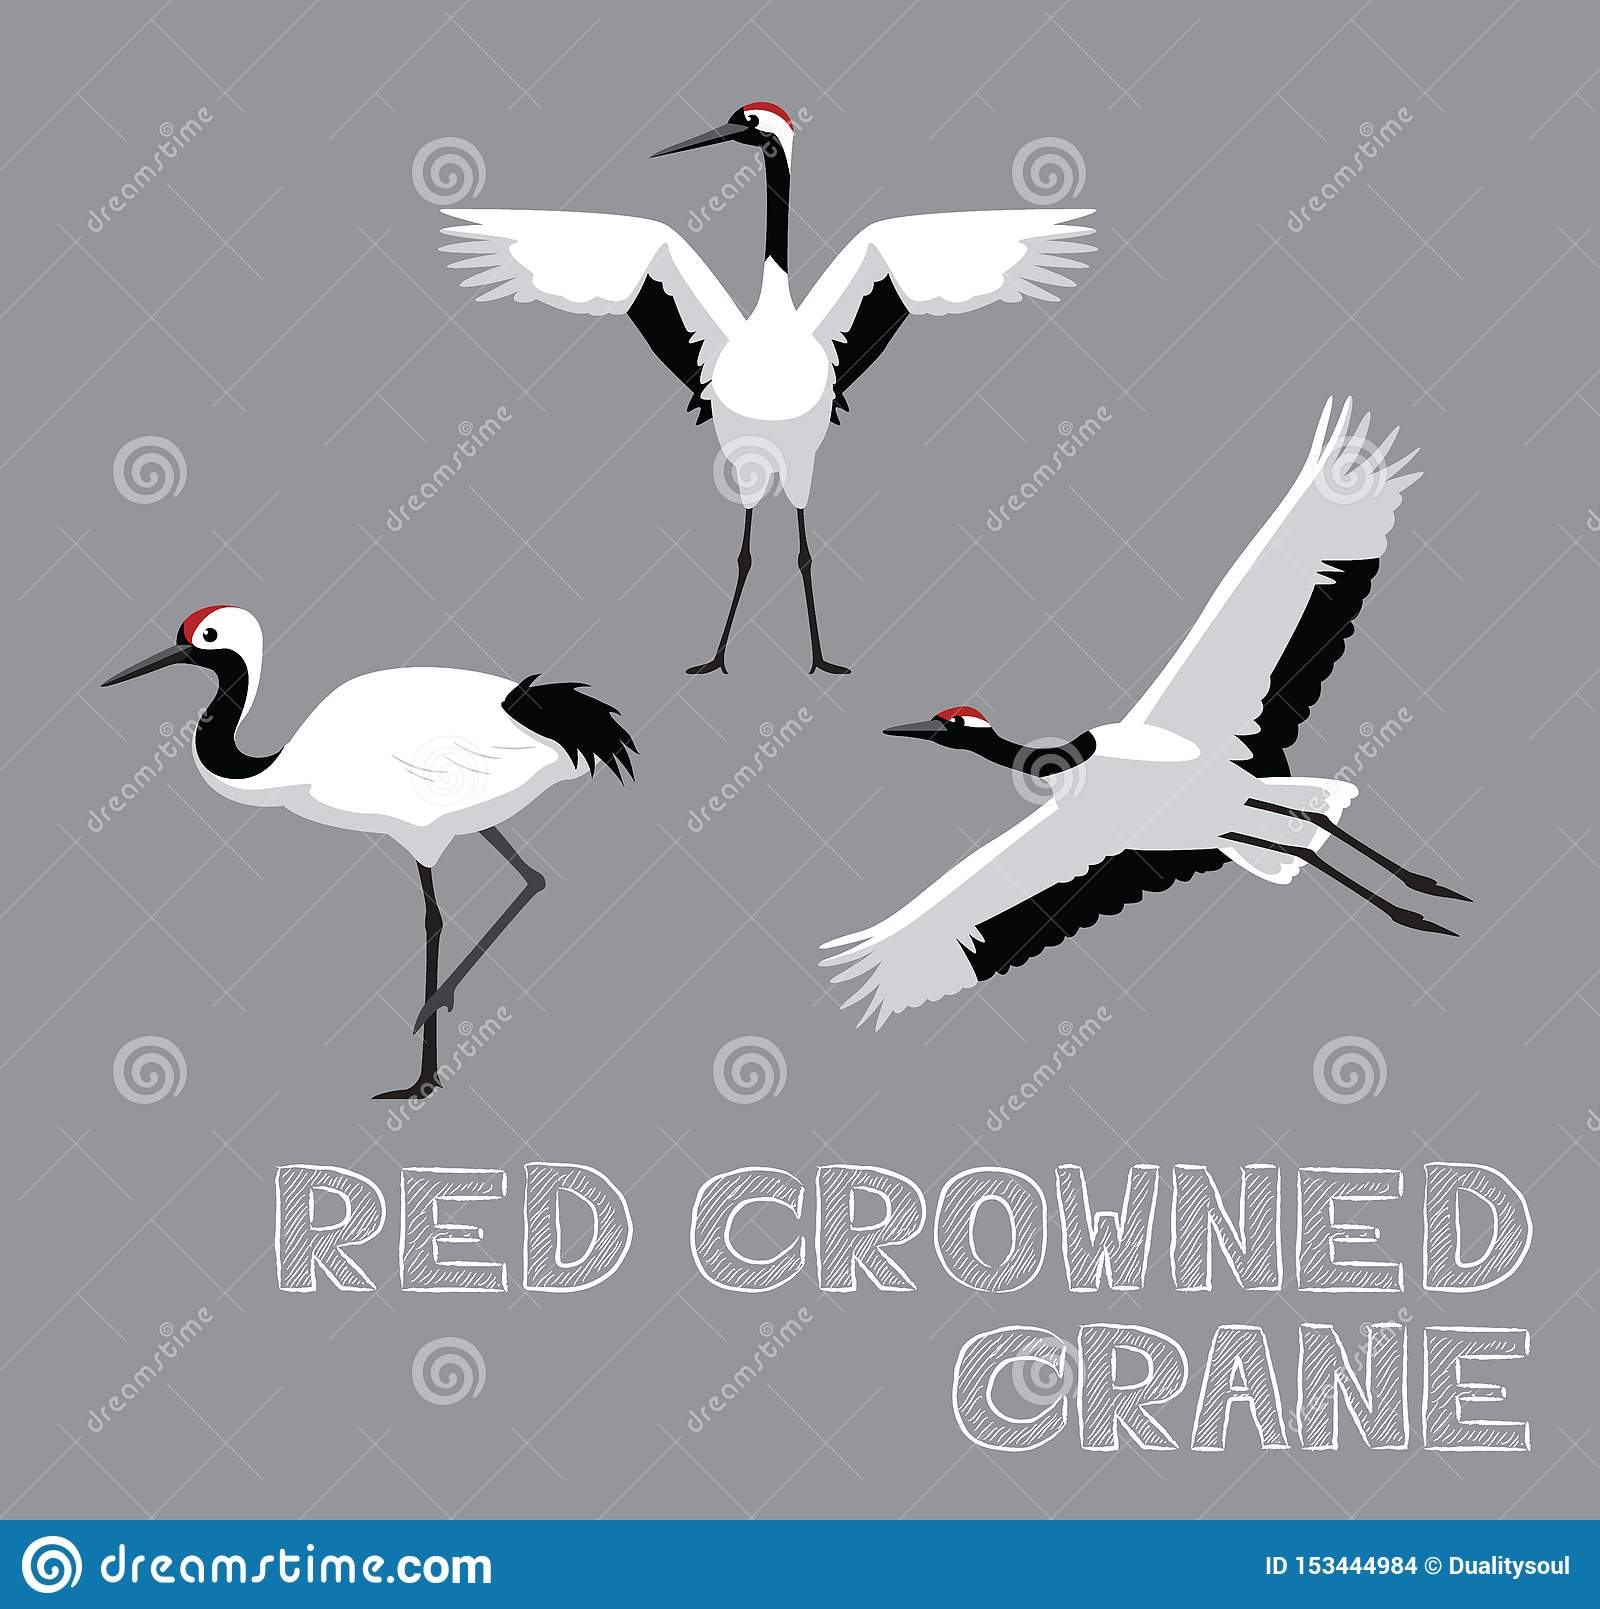 Red Crowned Crane Cartoon Vector Illustration Stock Vector Illustration Of Pose Species 153444984 Red crowned crane simple vector icon. https www dreamstime com red crowned crane cartoon vector illustration animal eps file format image153444984